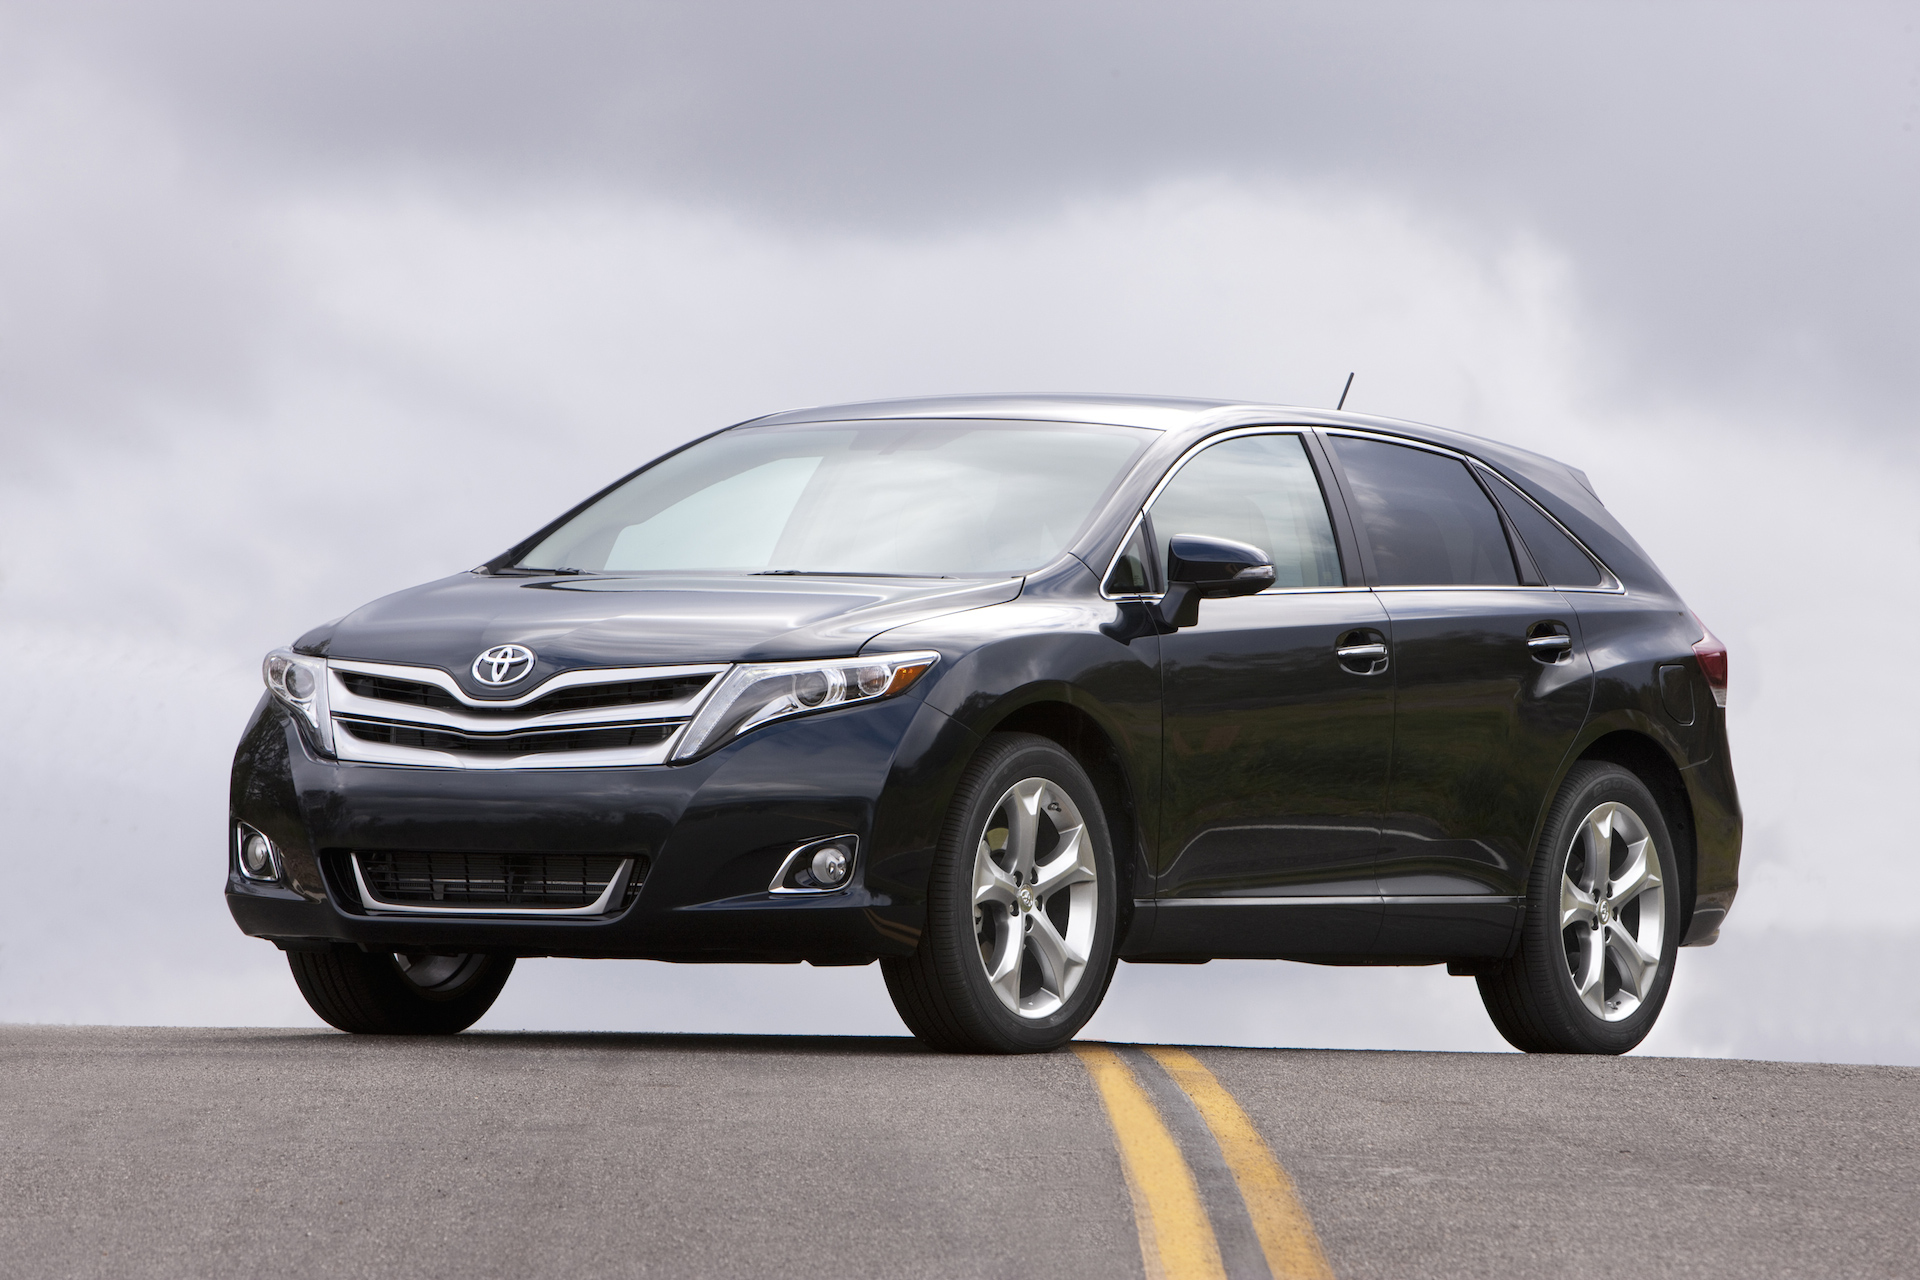 Used Toyota Venza: Prices, Photos, Reviews, Specs  The Car Connection